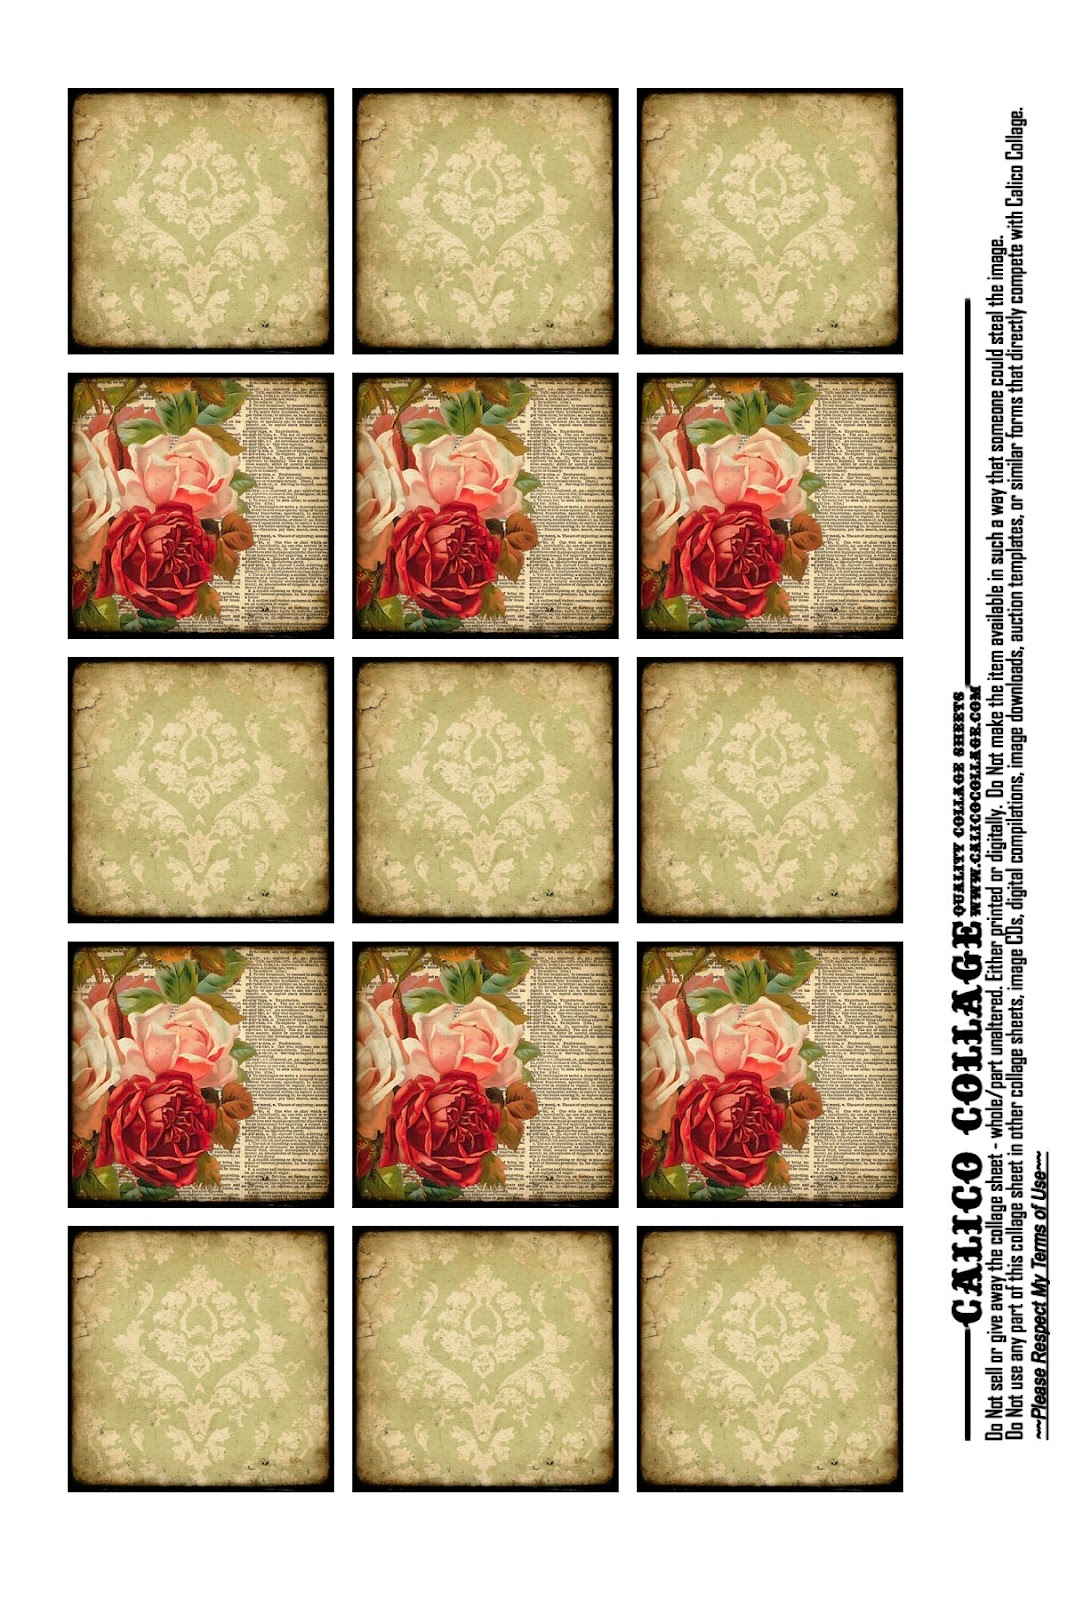 Calico Collage High Quality Digital Collage Sheets Free